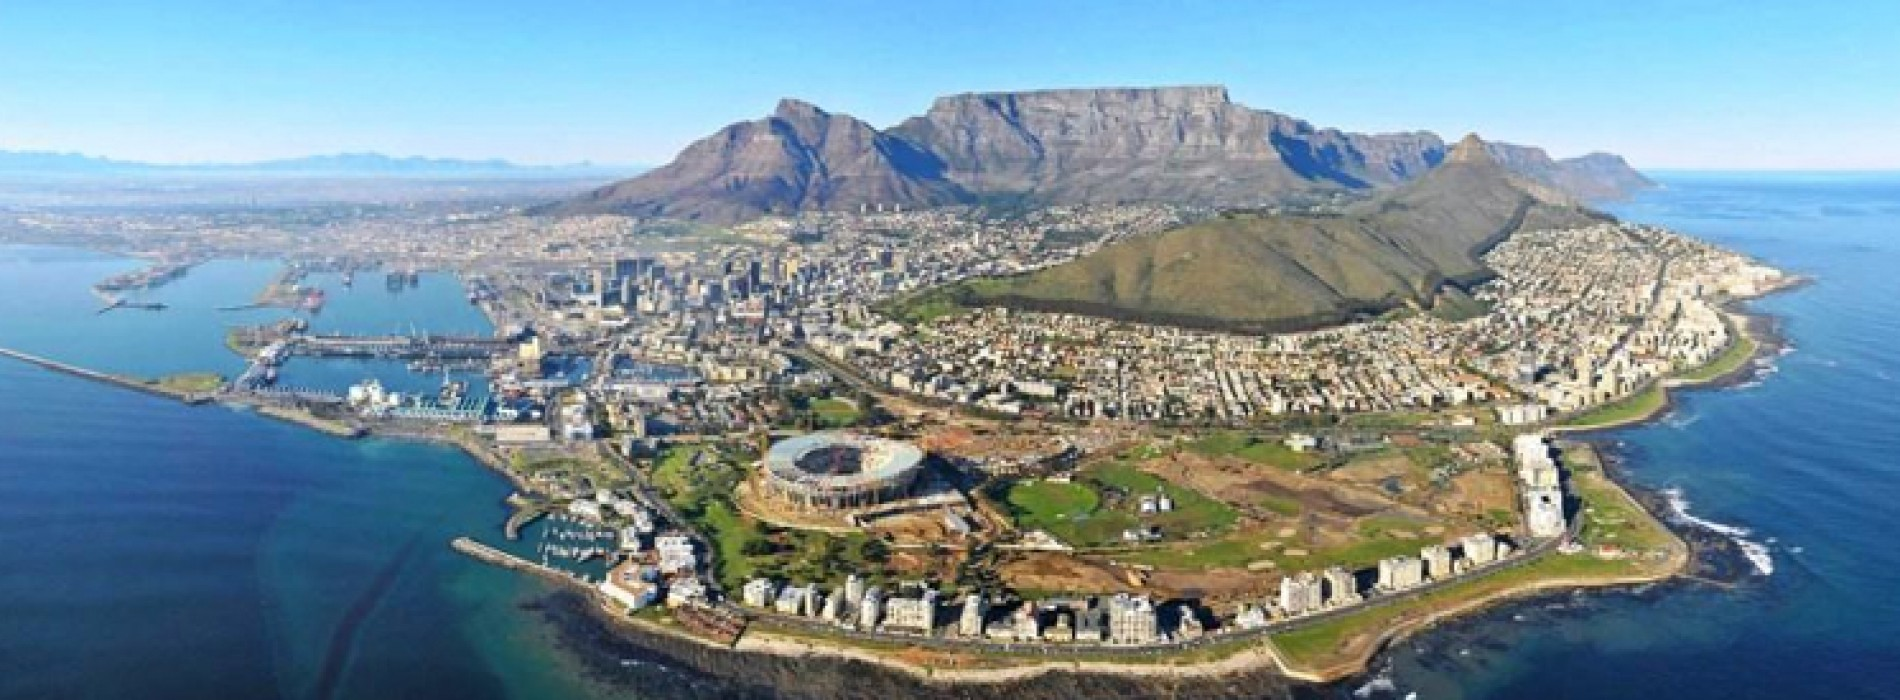 South Africa Makes Play for International MICE Tourism